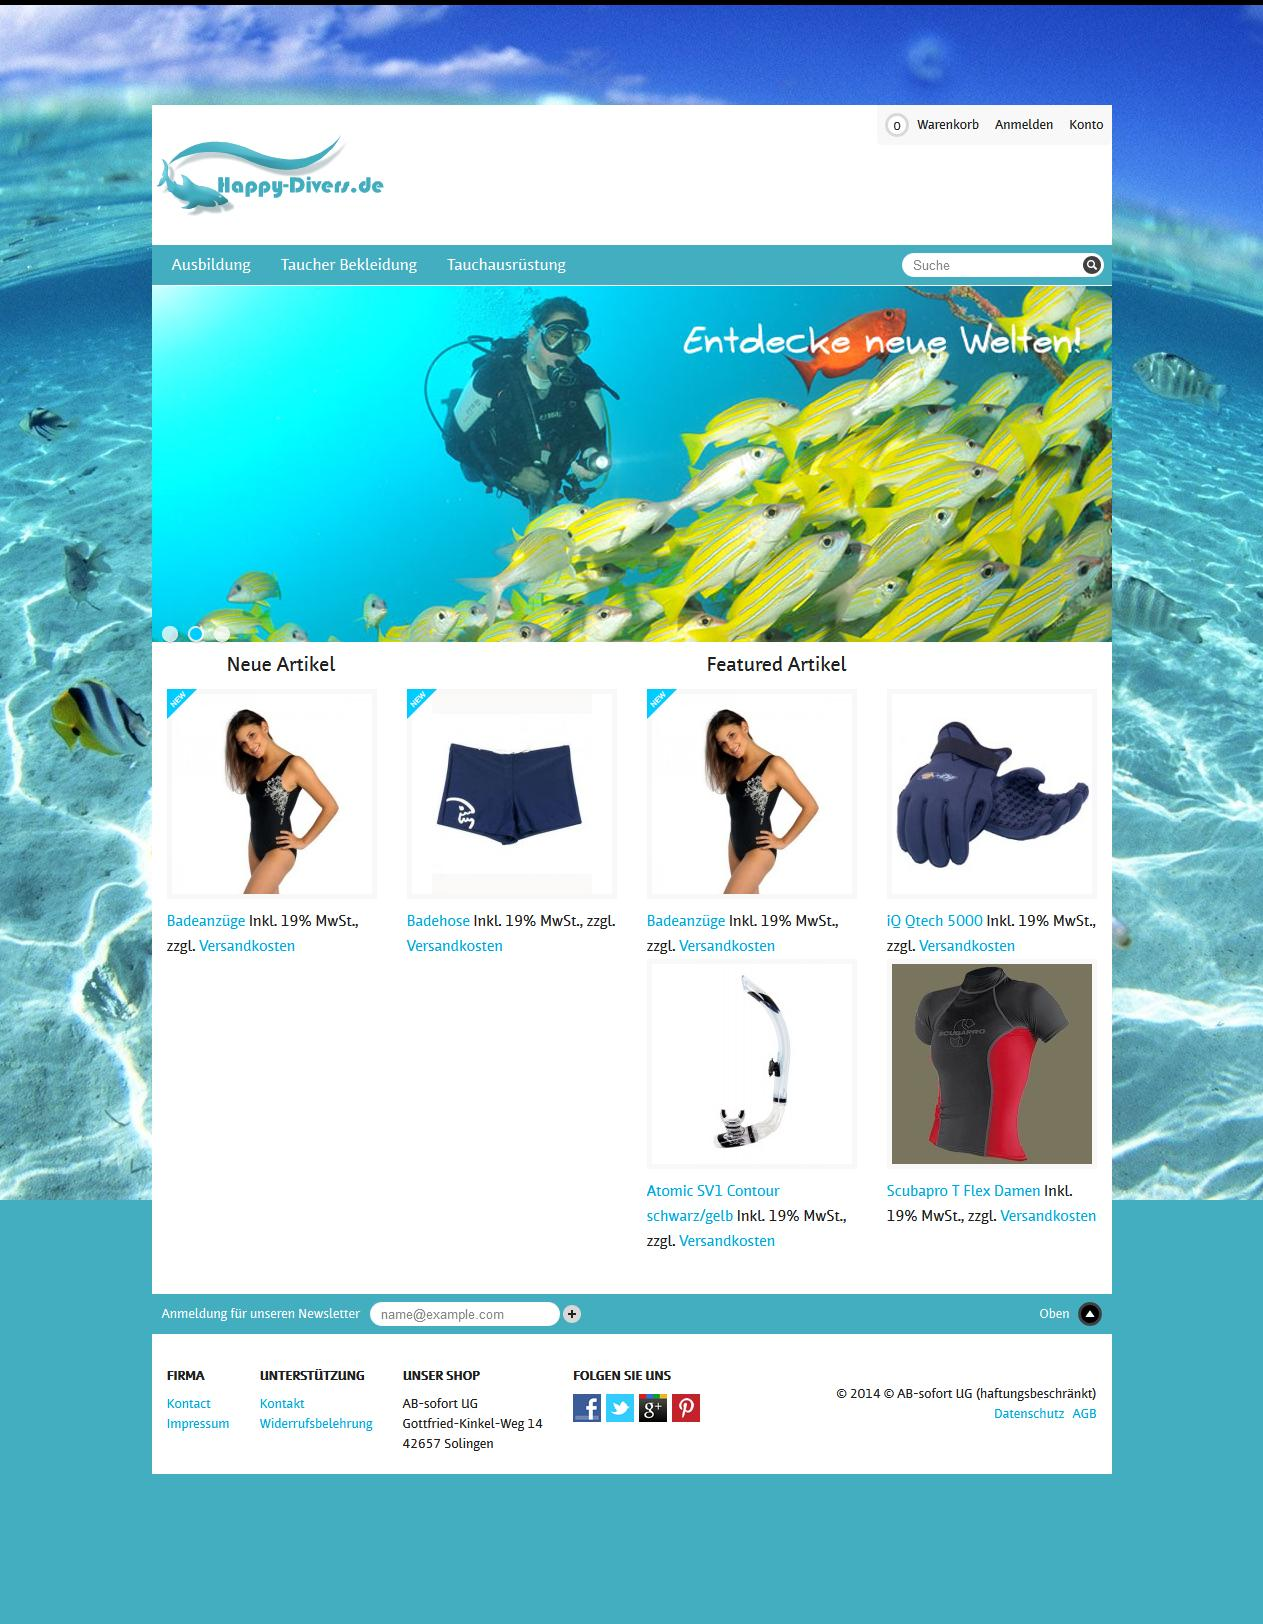 Complete Magento eCommerce Website with Shopping Cart by intecinfosys - 44710